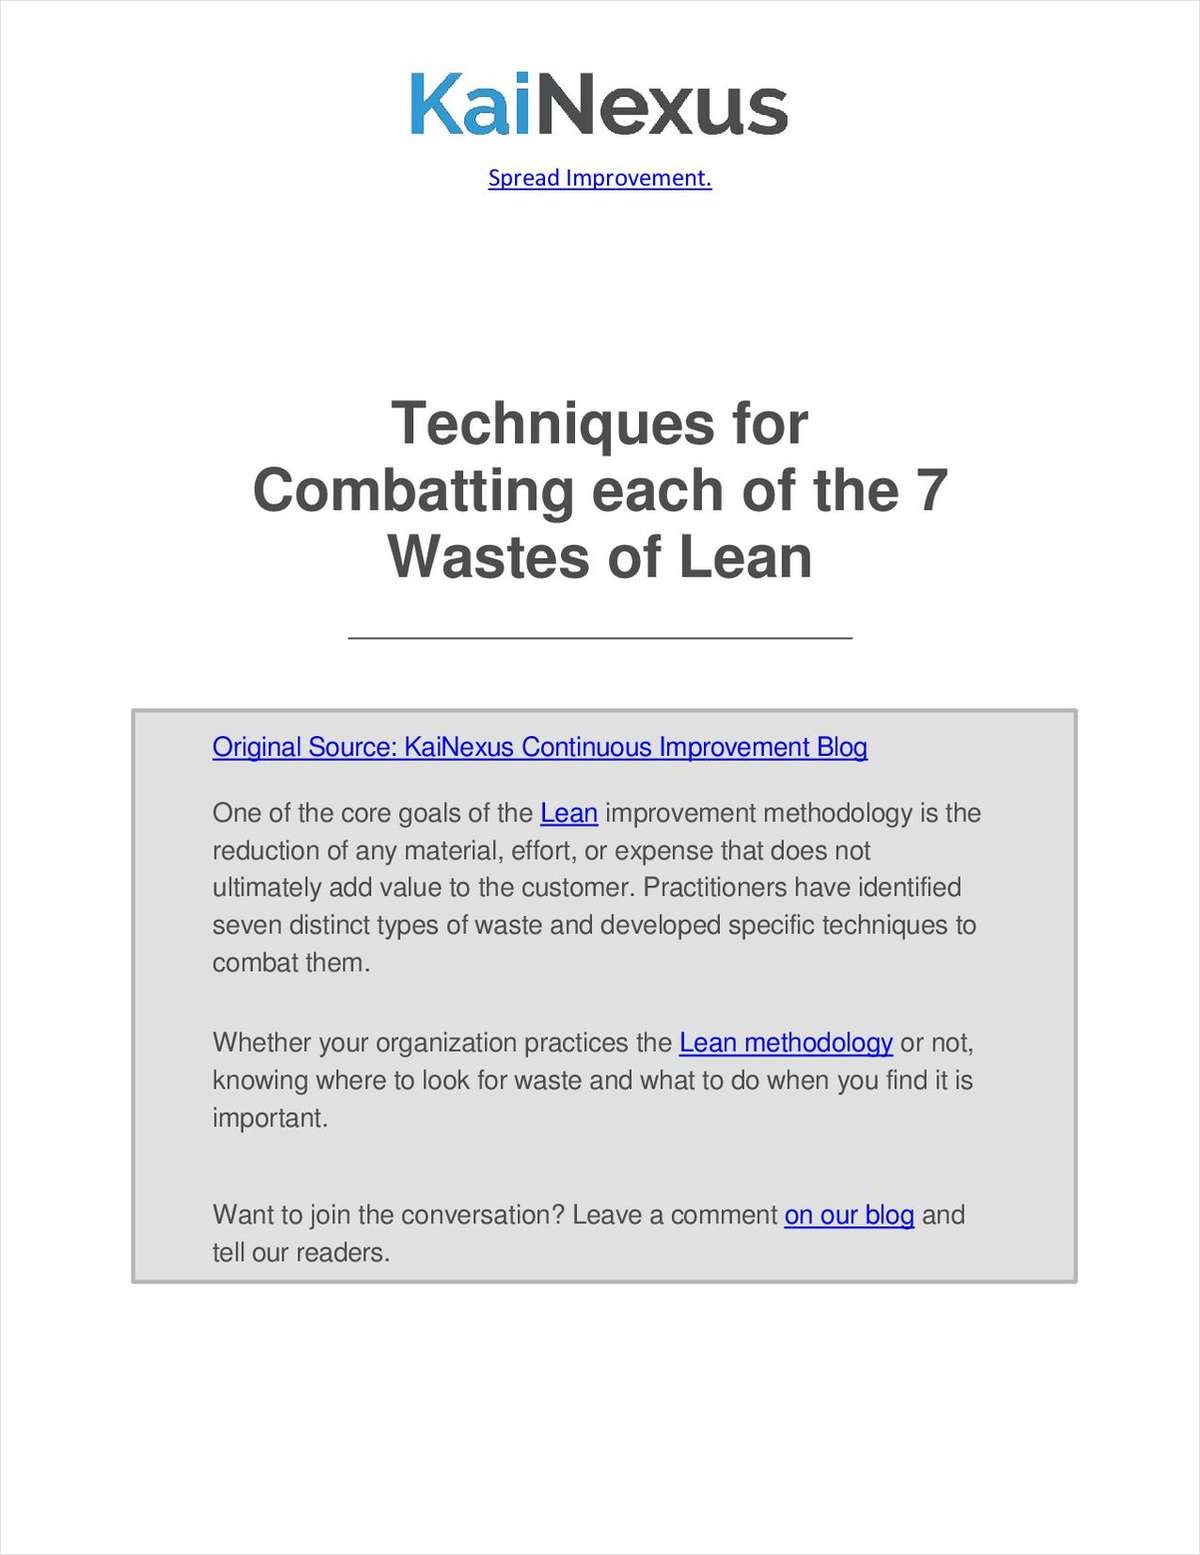 Techniques for Combatting each of the 7 Wastes of Lean